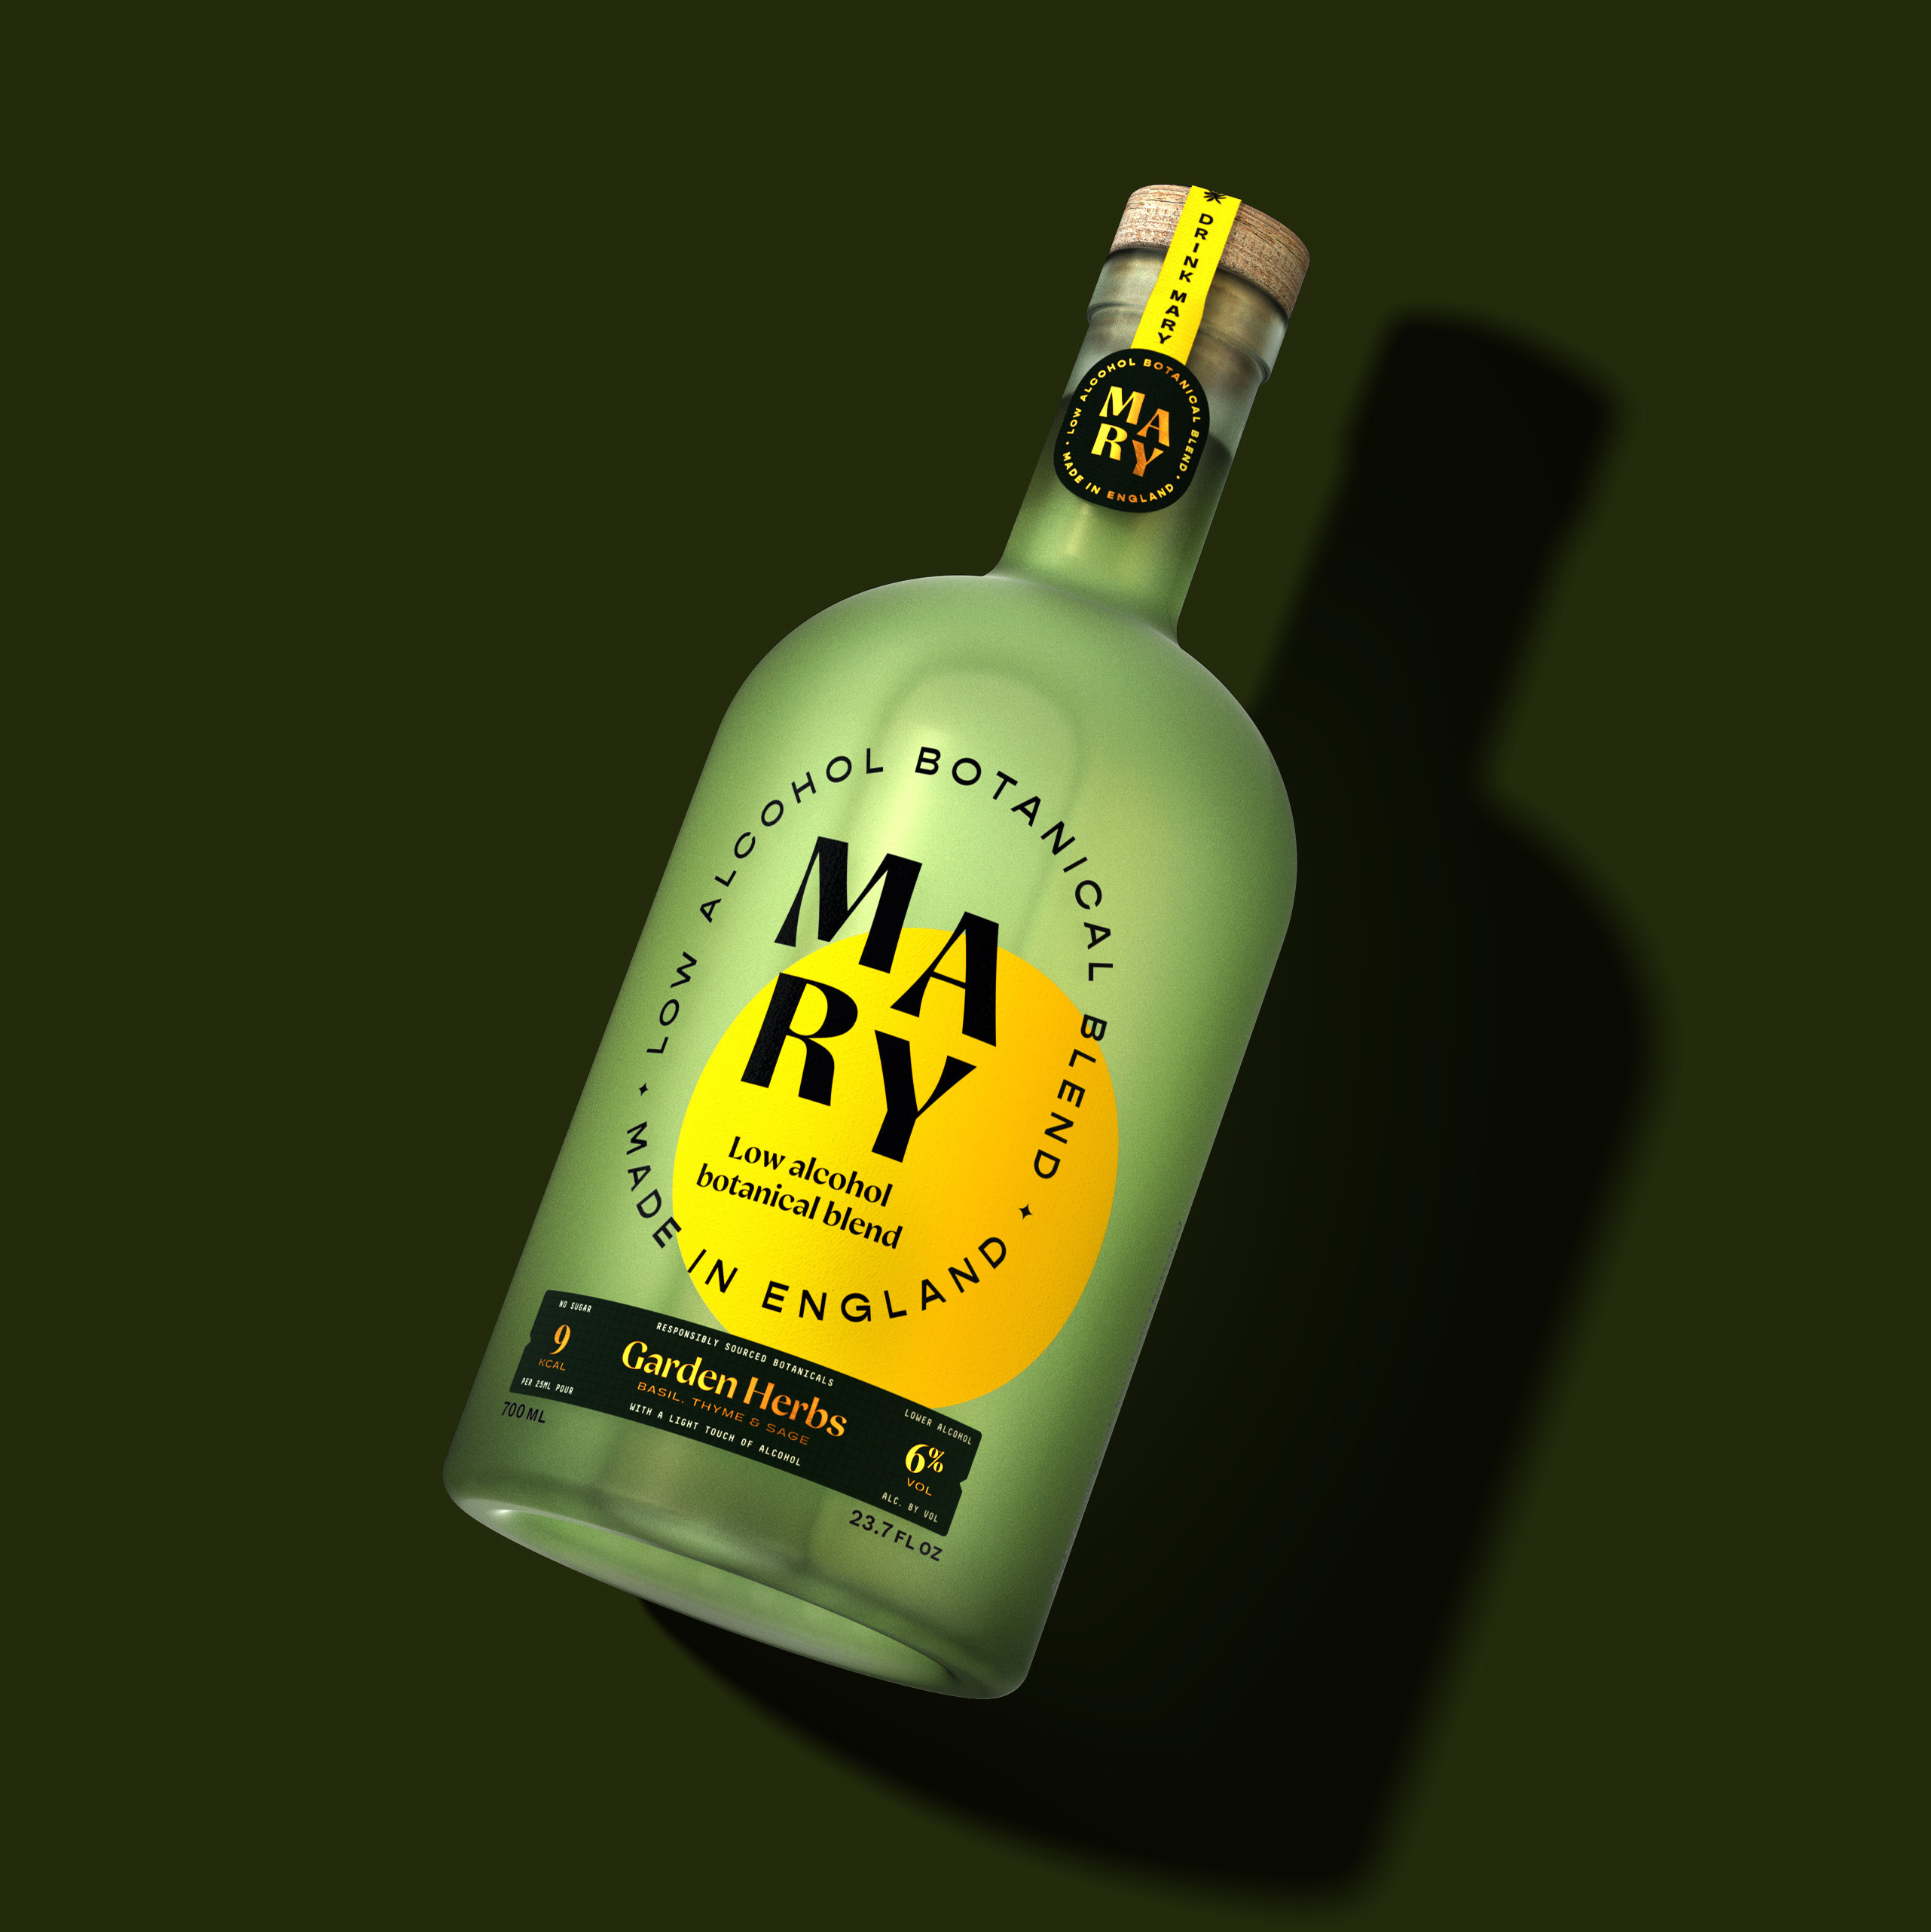 Studio Chong Create New Brand and Packaging Design for Mary, a Low Alcohol Botanical Blend